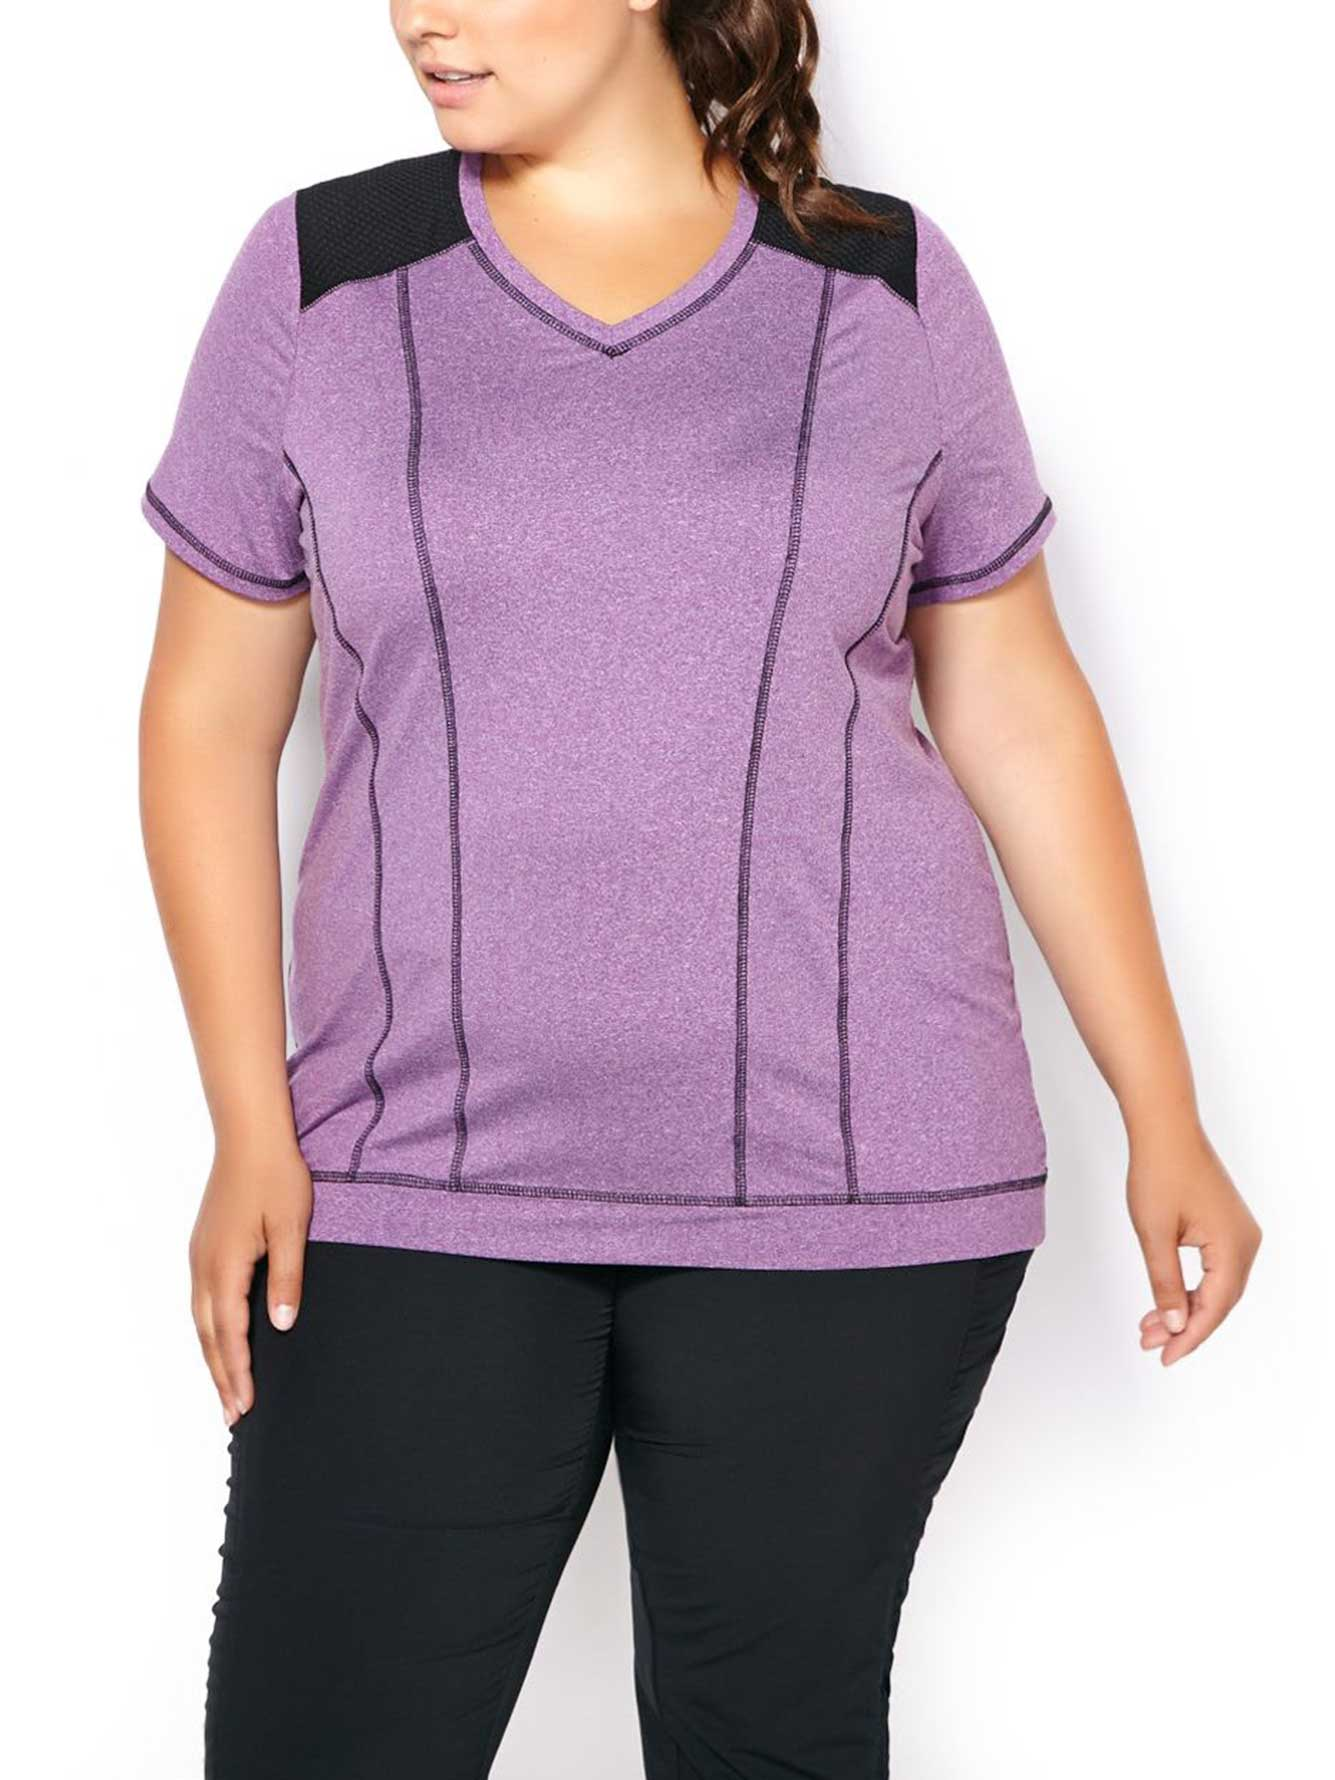 7b5af22b Essentials - Plus-Size V-Neck T-Shirt with Mesh | Penningtons